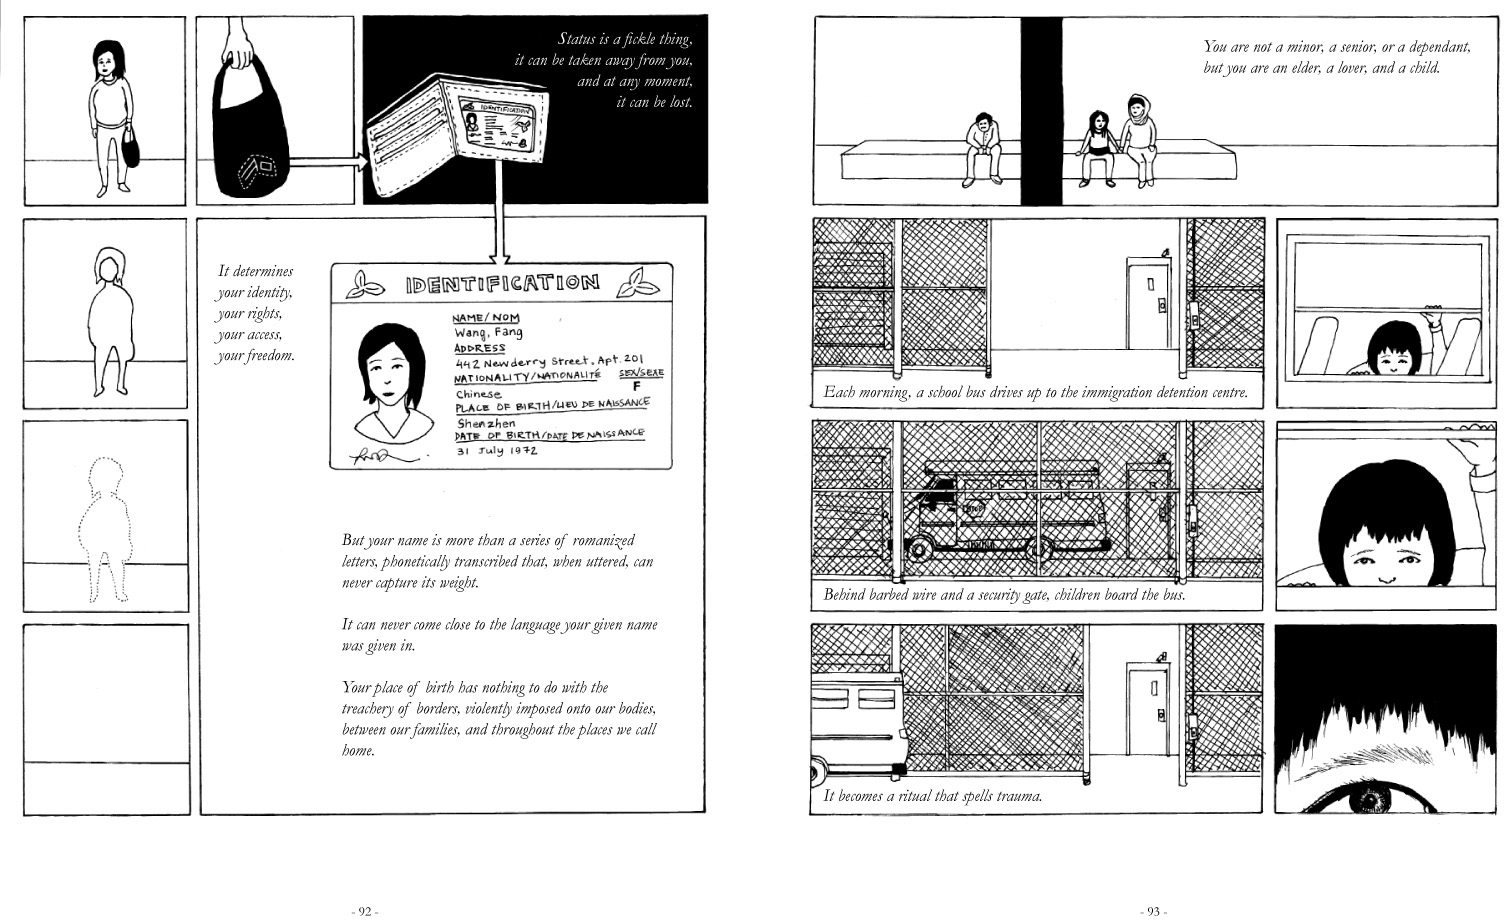 Chak Undocumented The Architecture Of Migrant Detention Draft 50